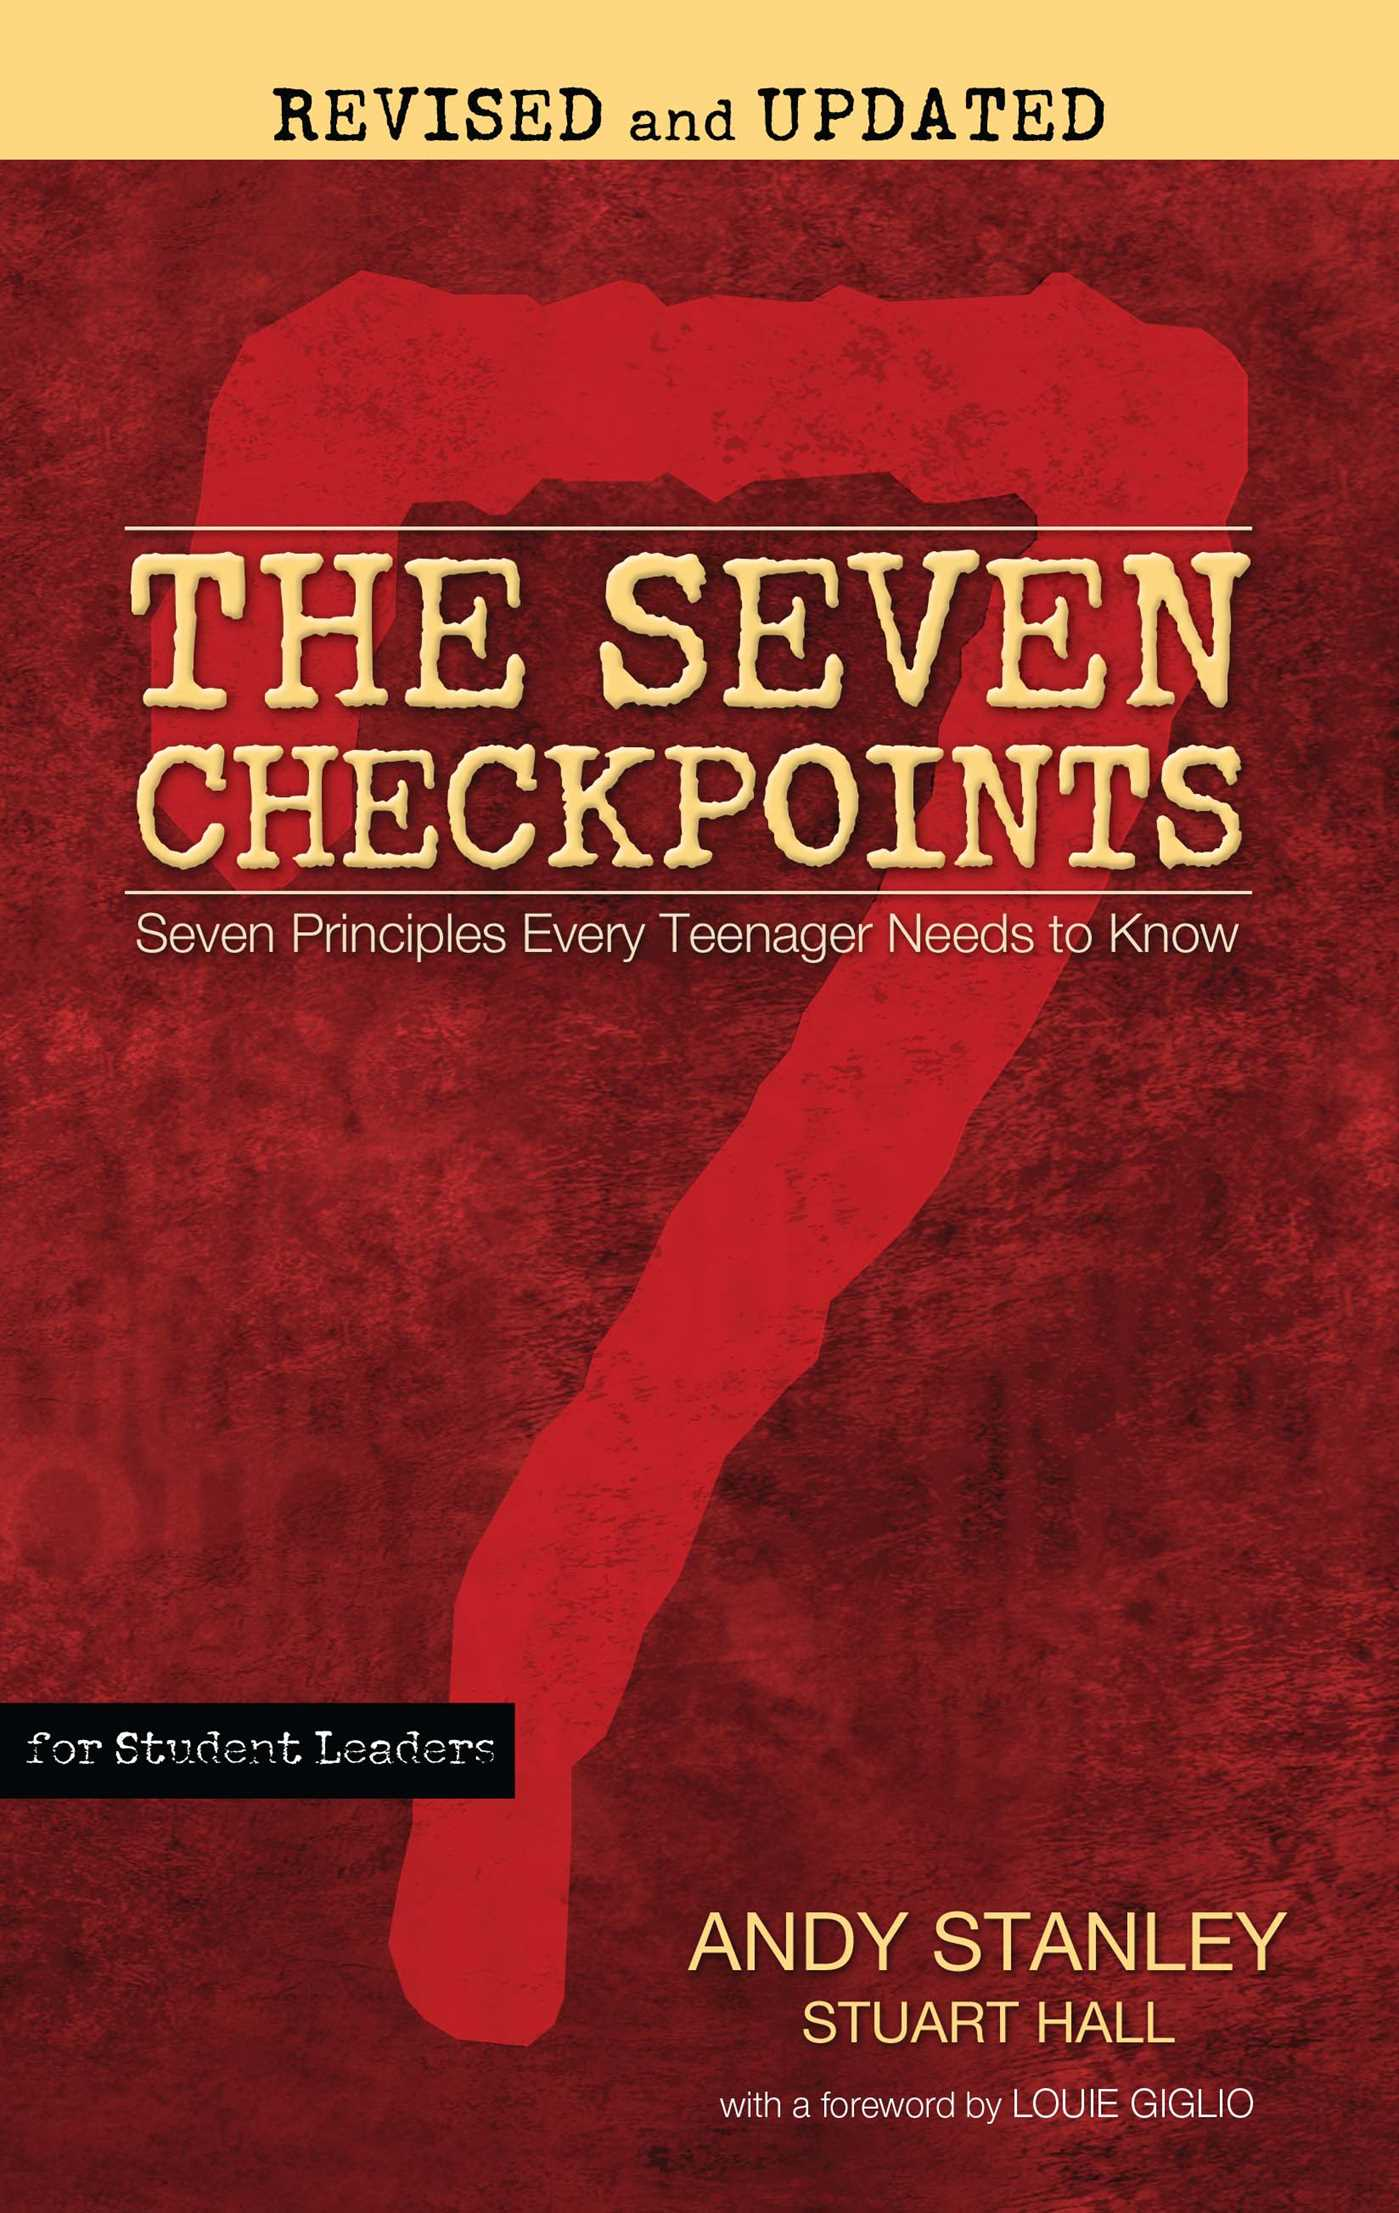 The-seven-checkpoints-for-student-leaders-9781439189337_hr